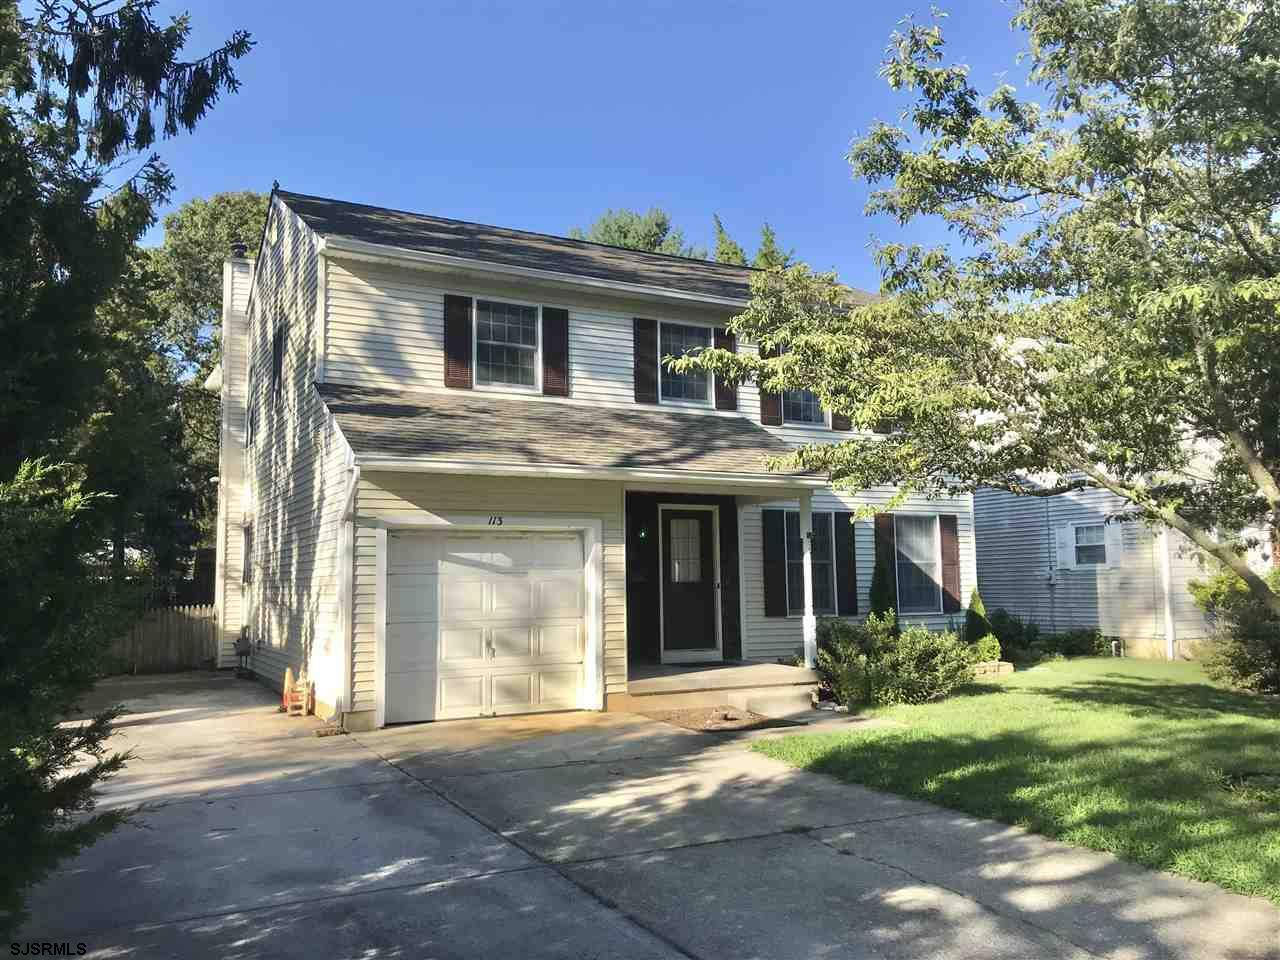 A great opportunity in this crazy GO-GO market to snatch a legit 4 bedroom/2.5 Colonial w/over 2,000